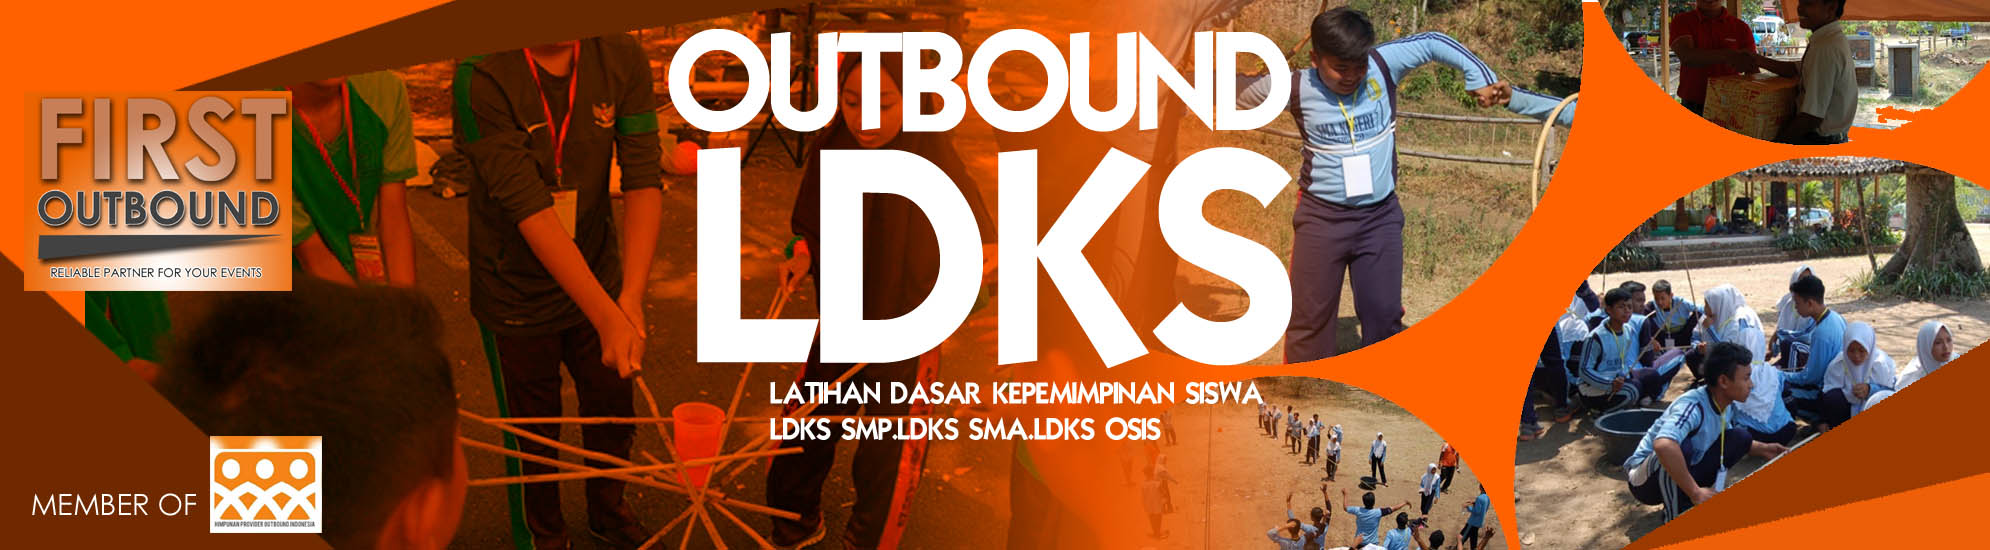 <h1>Outbound LDKS</h1>